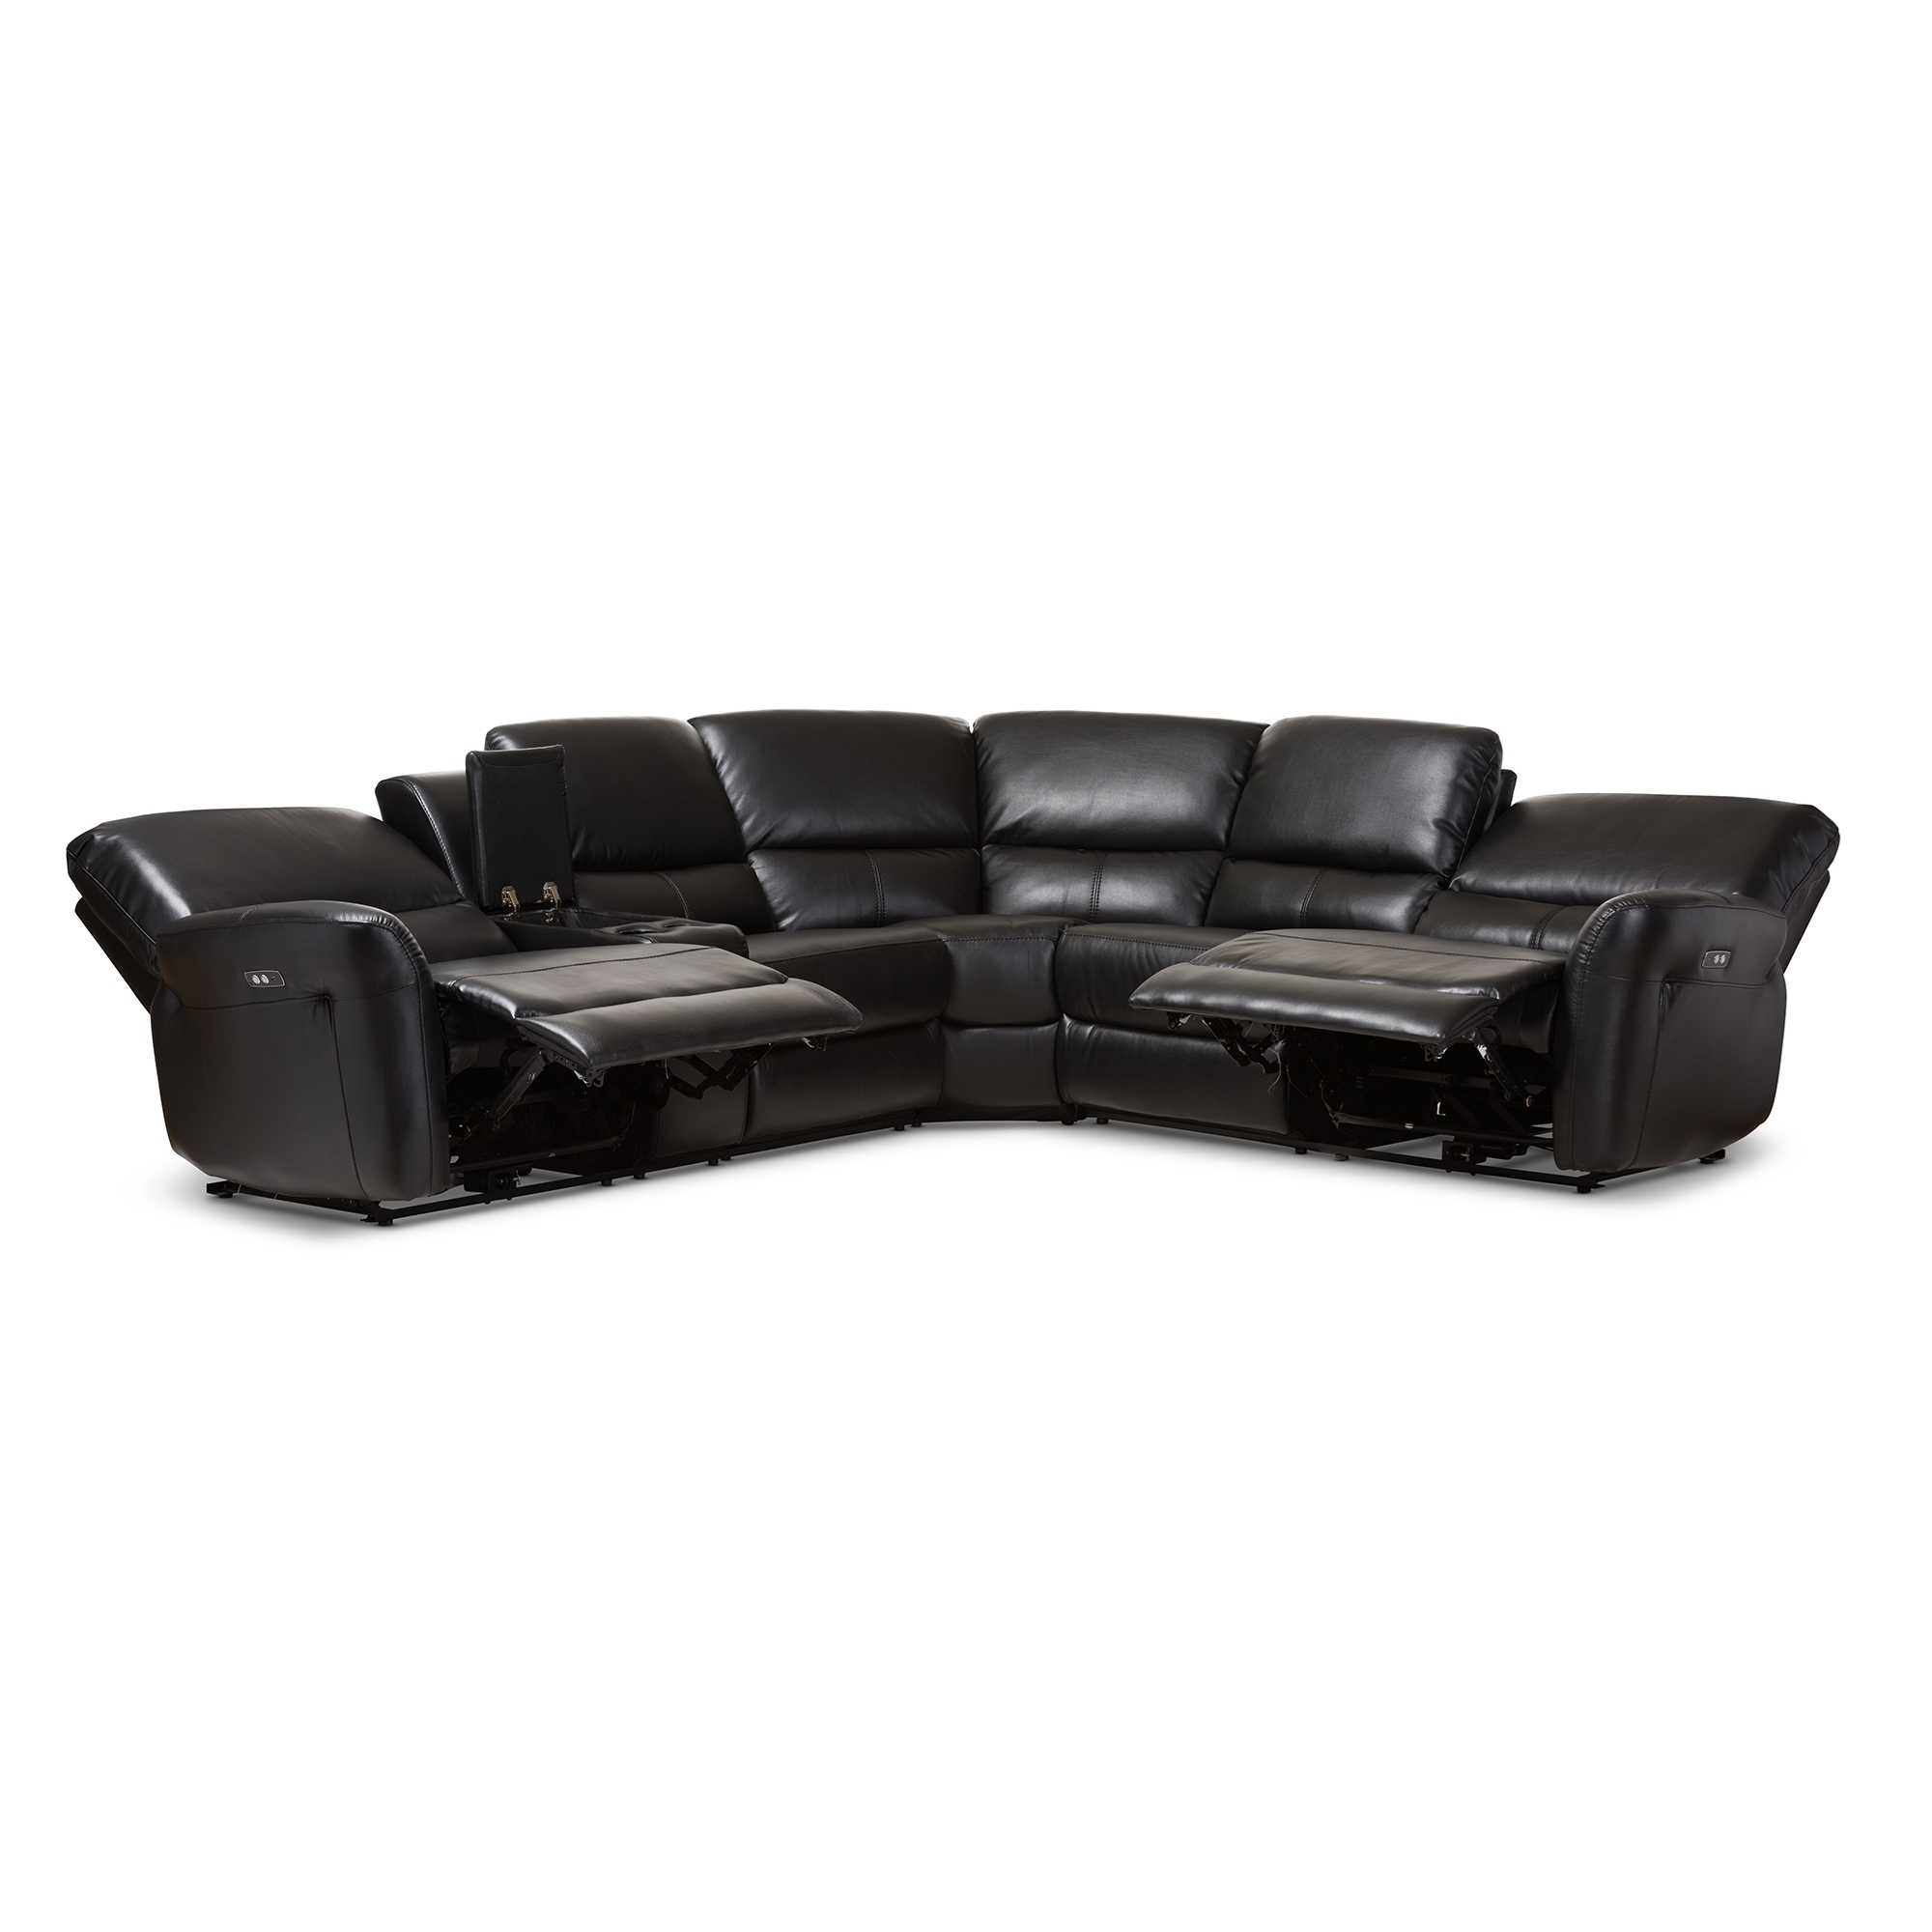 ... Baxton Studio Amaris Modern and Contemporary Black Bonded Leather 5-Piece Power Reclining Sectional Sofa ...  sc 1 st  Baxton Studio Outlet & Baxton Studio Amaris Modern and Contemporary Black Bonded Leather ... islam-shia.org